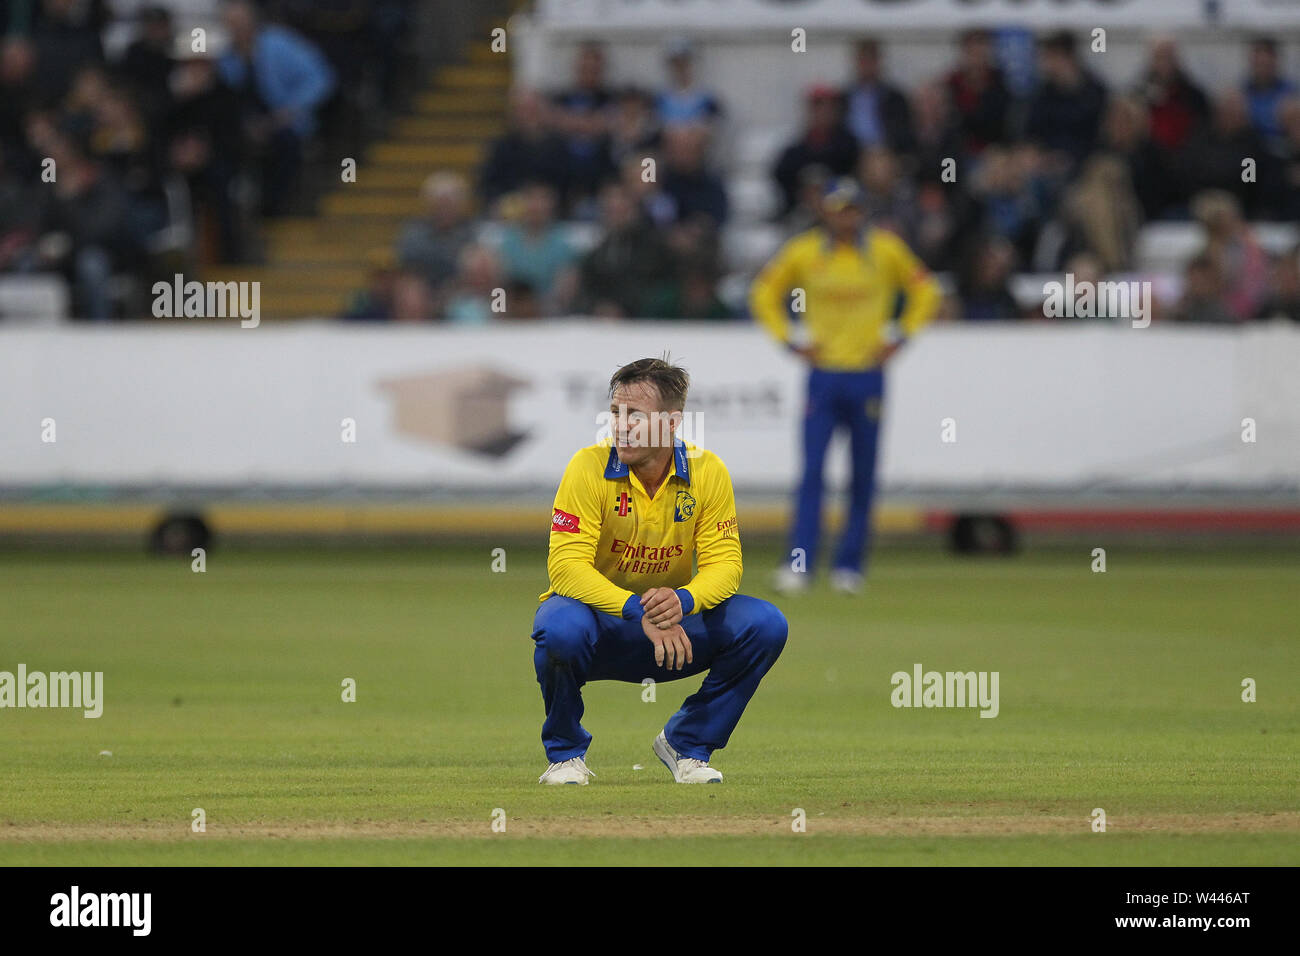 CHESTER LE STREET, ENGLAND 19th July 2019. D'arcy Short of Durham during the Vitality T20 Blast match between Durham County Cricket Club and Northamptonshire County Cricket Club at Emirates Riverside, Chester le Street on Friday 19th July 2019. (Credit: Mark Fletcher   MI News ) Credit: MI News & Sport /Alamy Live News - Stock Image